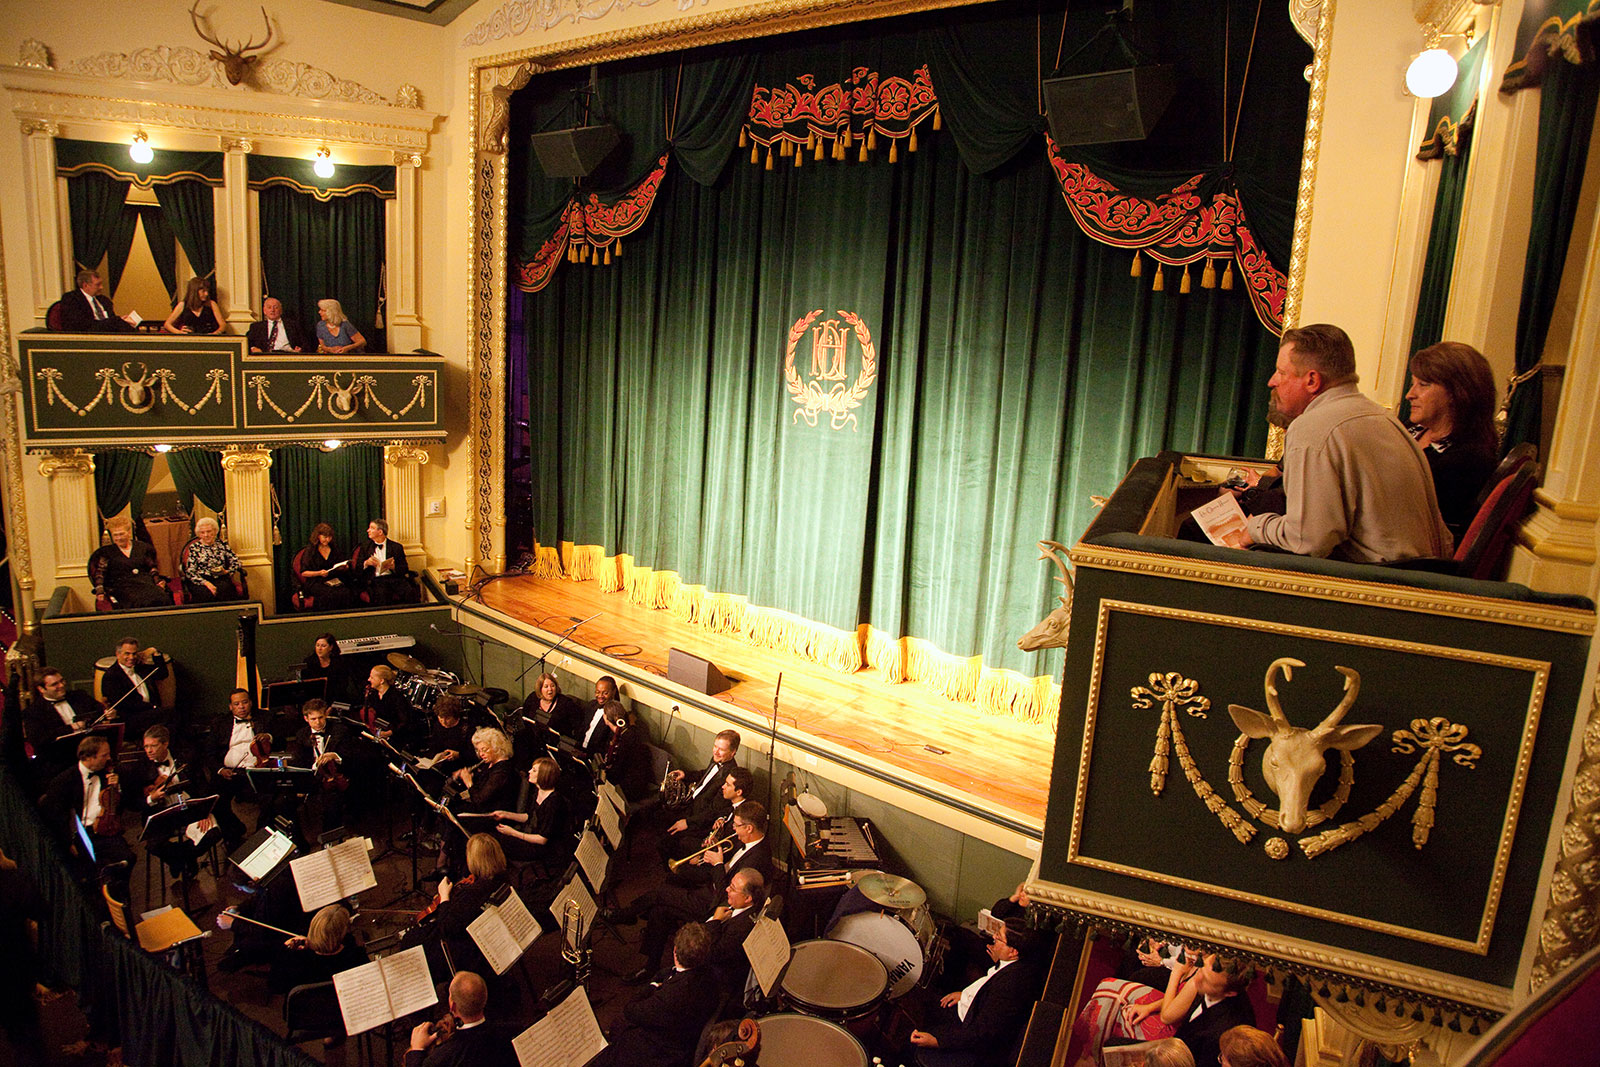 Vist the Elks Opera House in Prescott, Arizona when you stay at Forest Villas Hotel